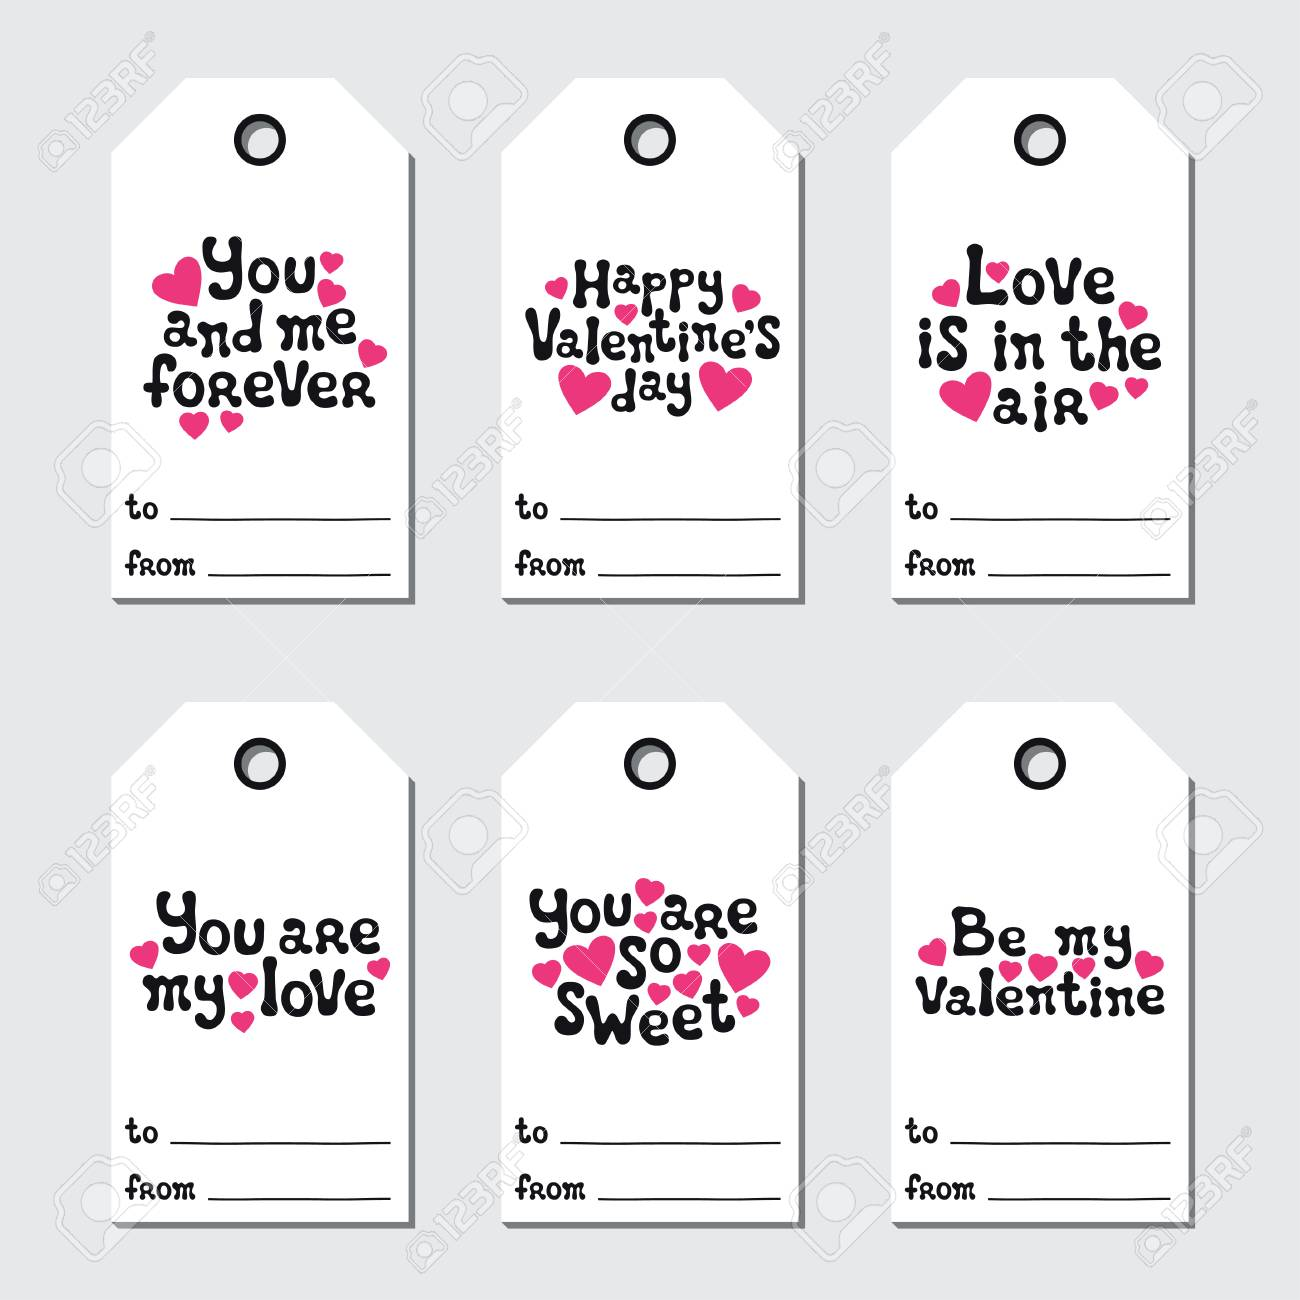 photo relating to Valentine's Day Tags Printable identified as St Valentines working day present tags. Printable tags assortment. Appreciate,..